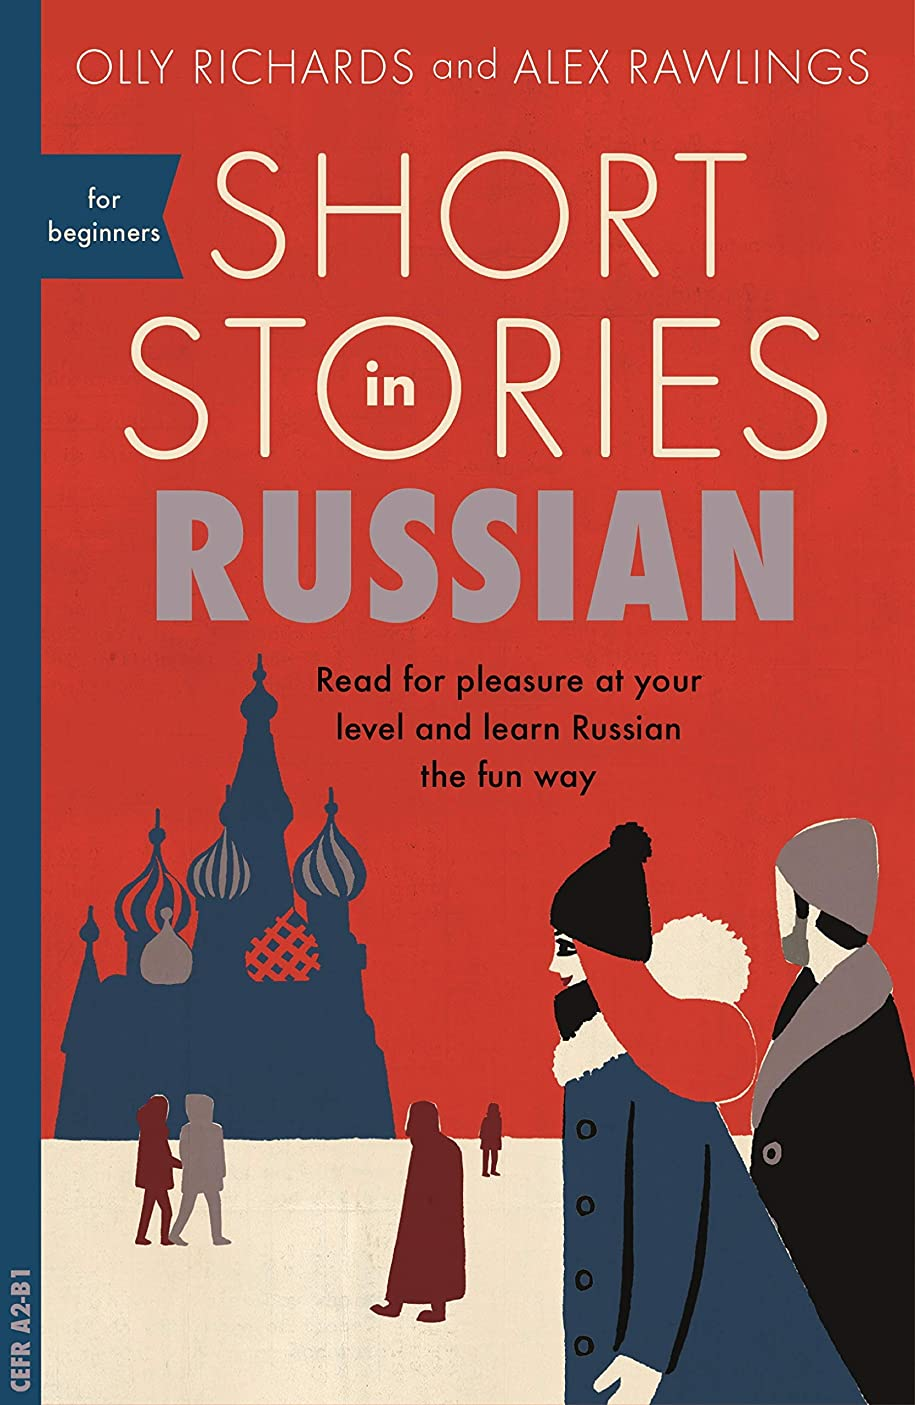 Short Stories in Russian for Beginners: Read for pleasure at your level, expand your vocabulary and learn Russian the fun way! Foreign Language Graded Reader Series English Edition